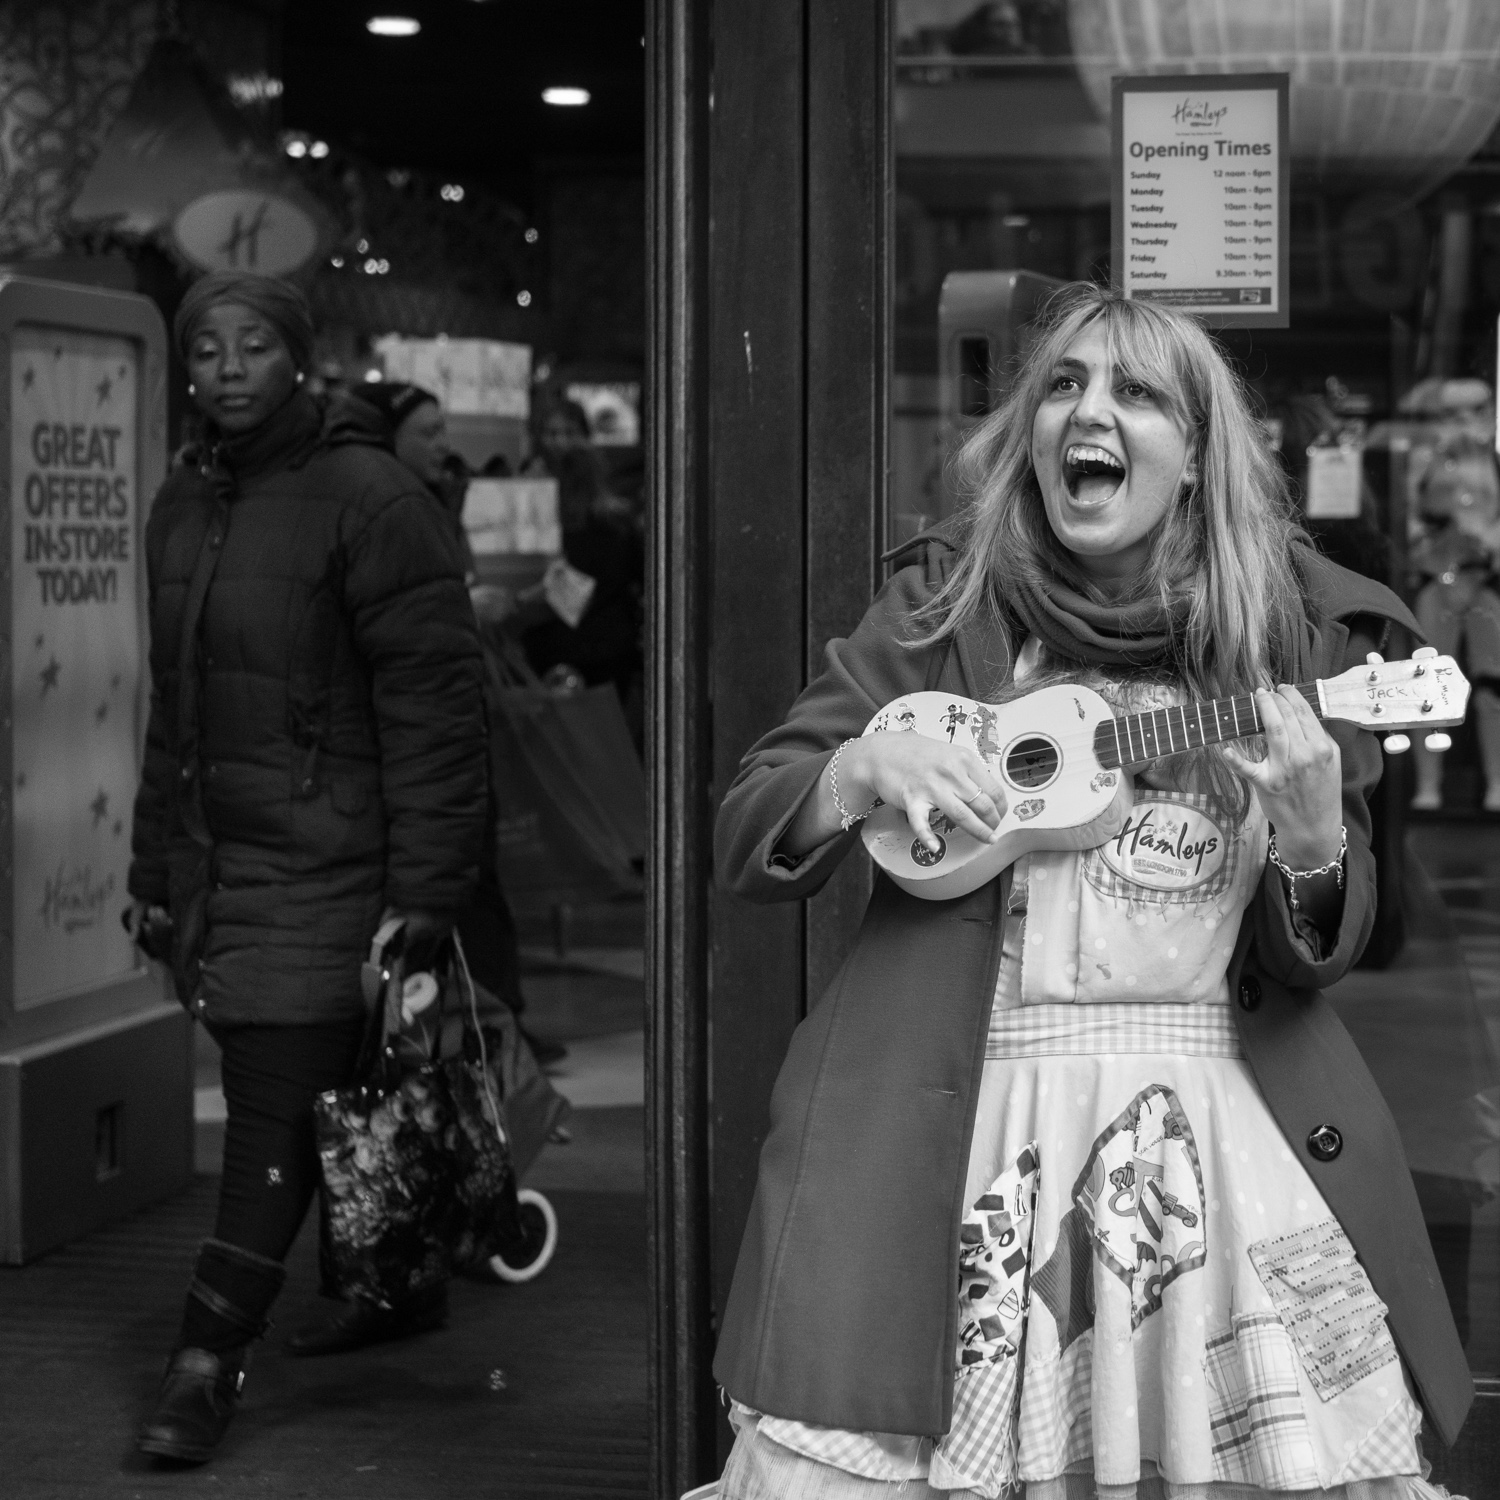 A few years ago I'd never have had the courage to get this close to strangers on the street - now I love street photography!